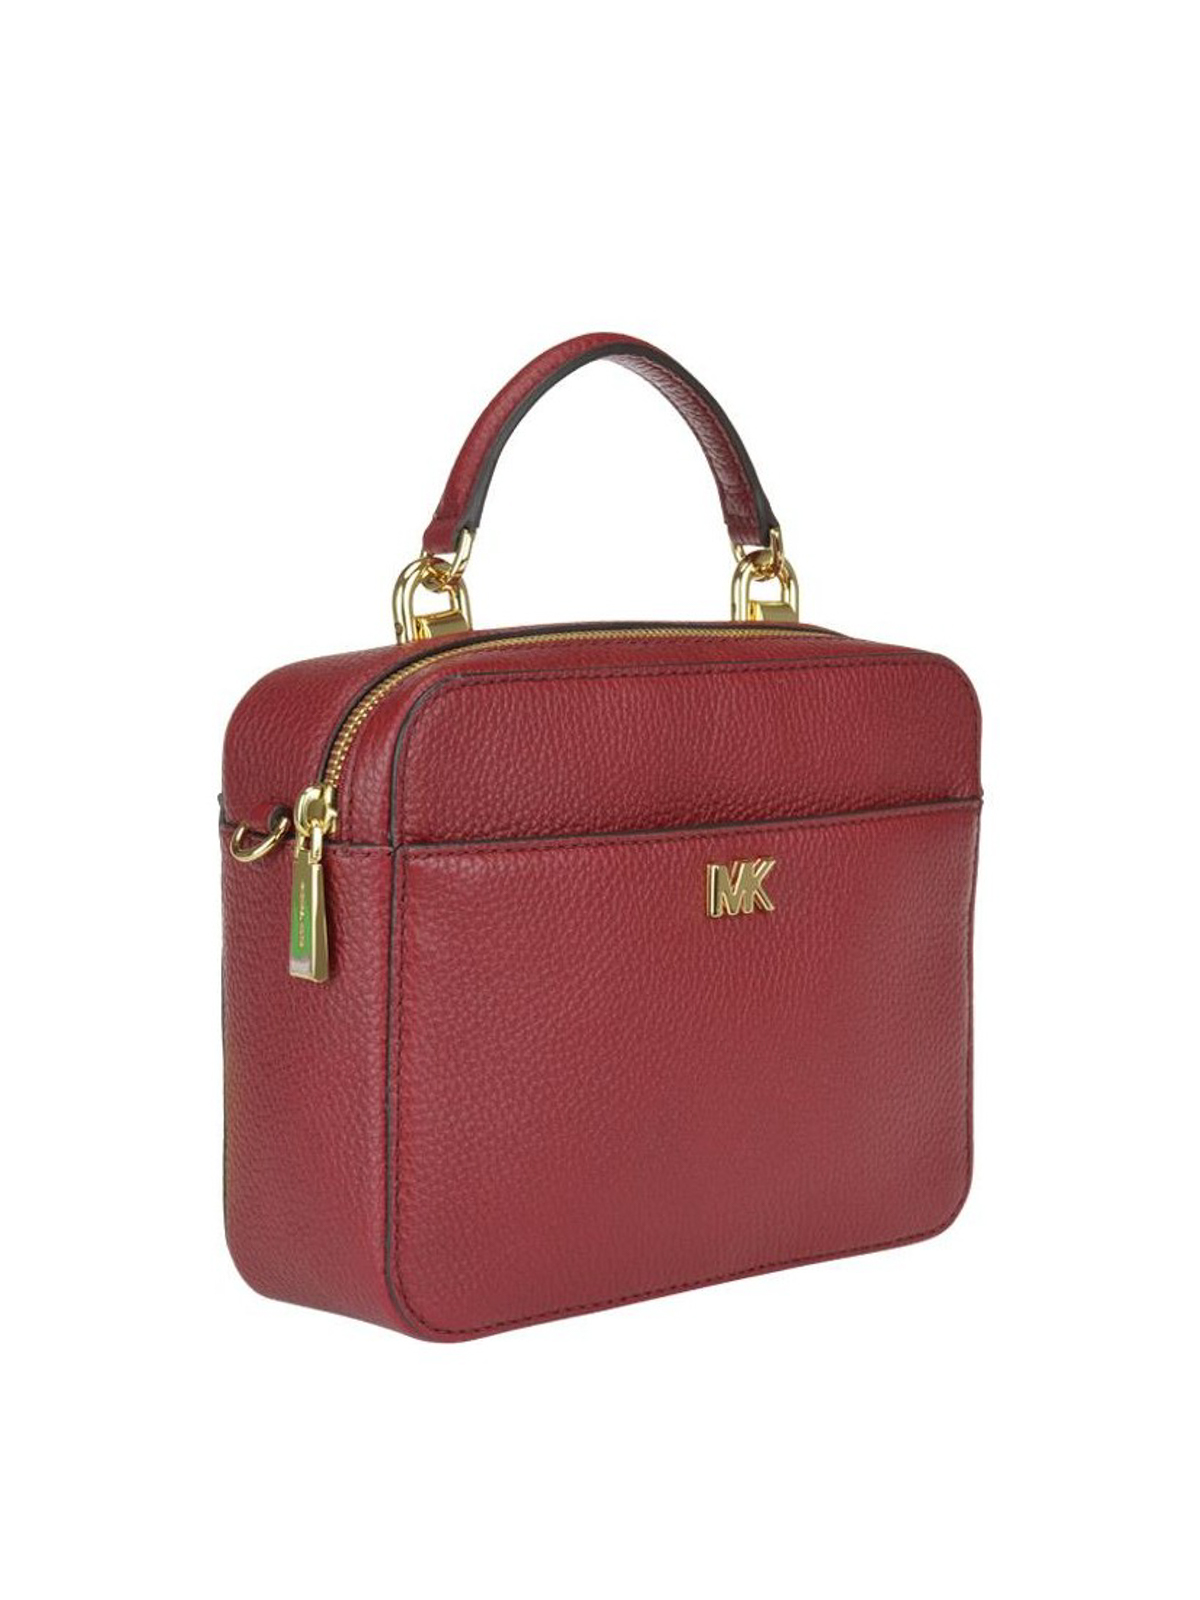 36cb969e9aec MICHAEL KORS  cross body bags online - Grained leather briefcase style bag